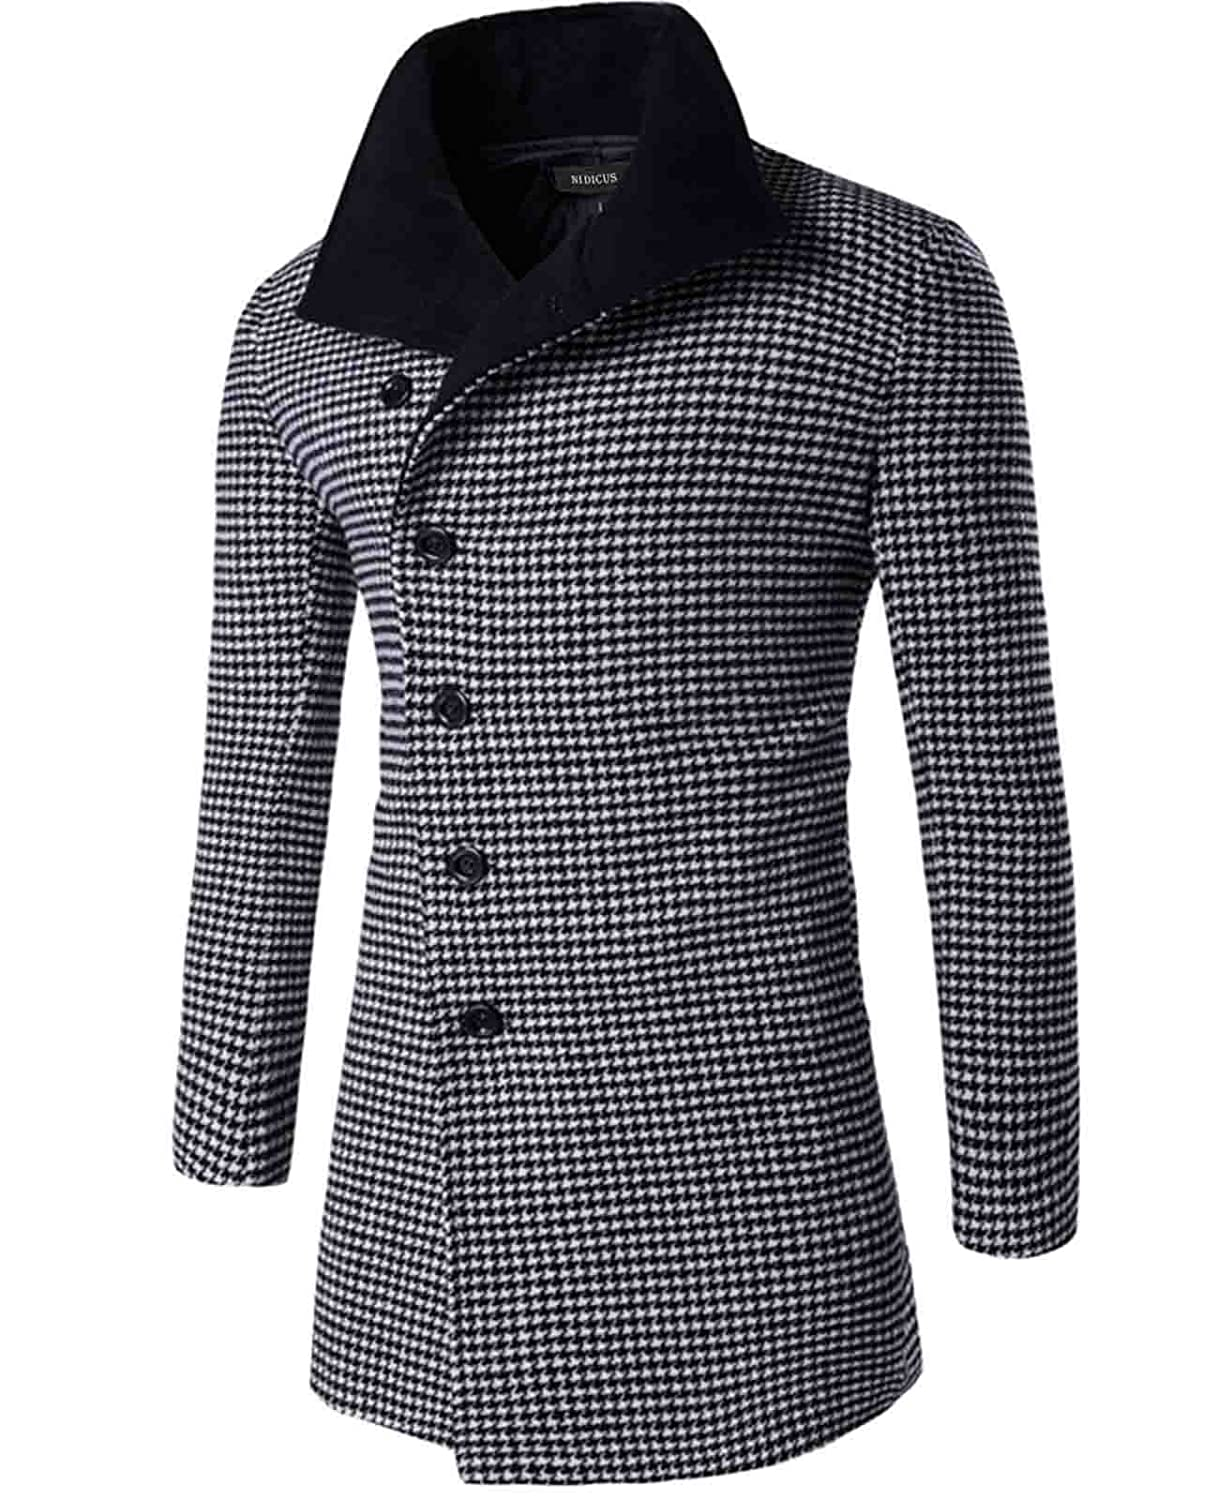 Nidicus Mens Retro Style Houndstooth Checks Single